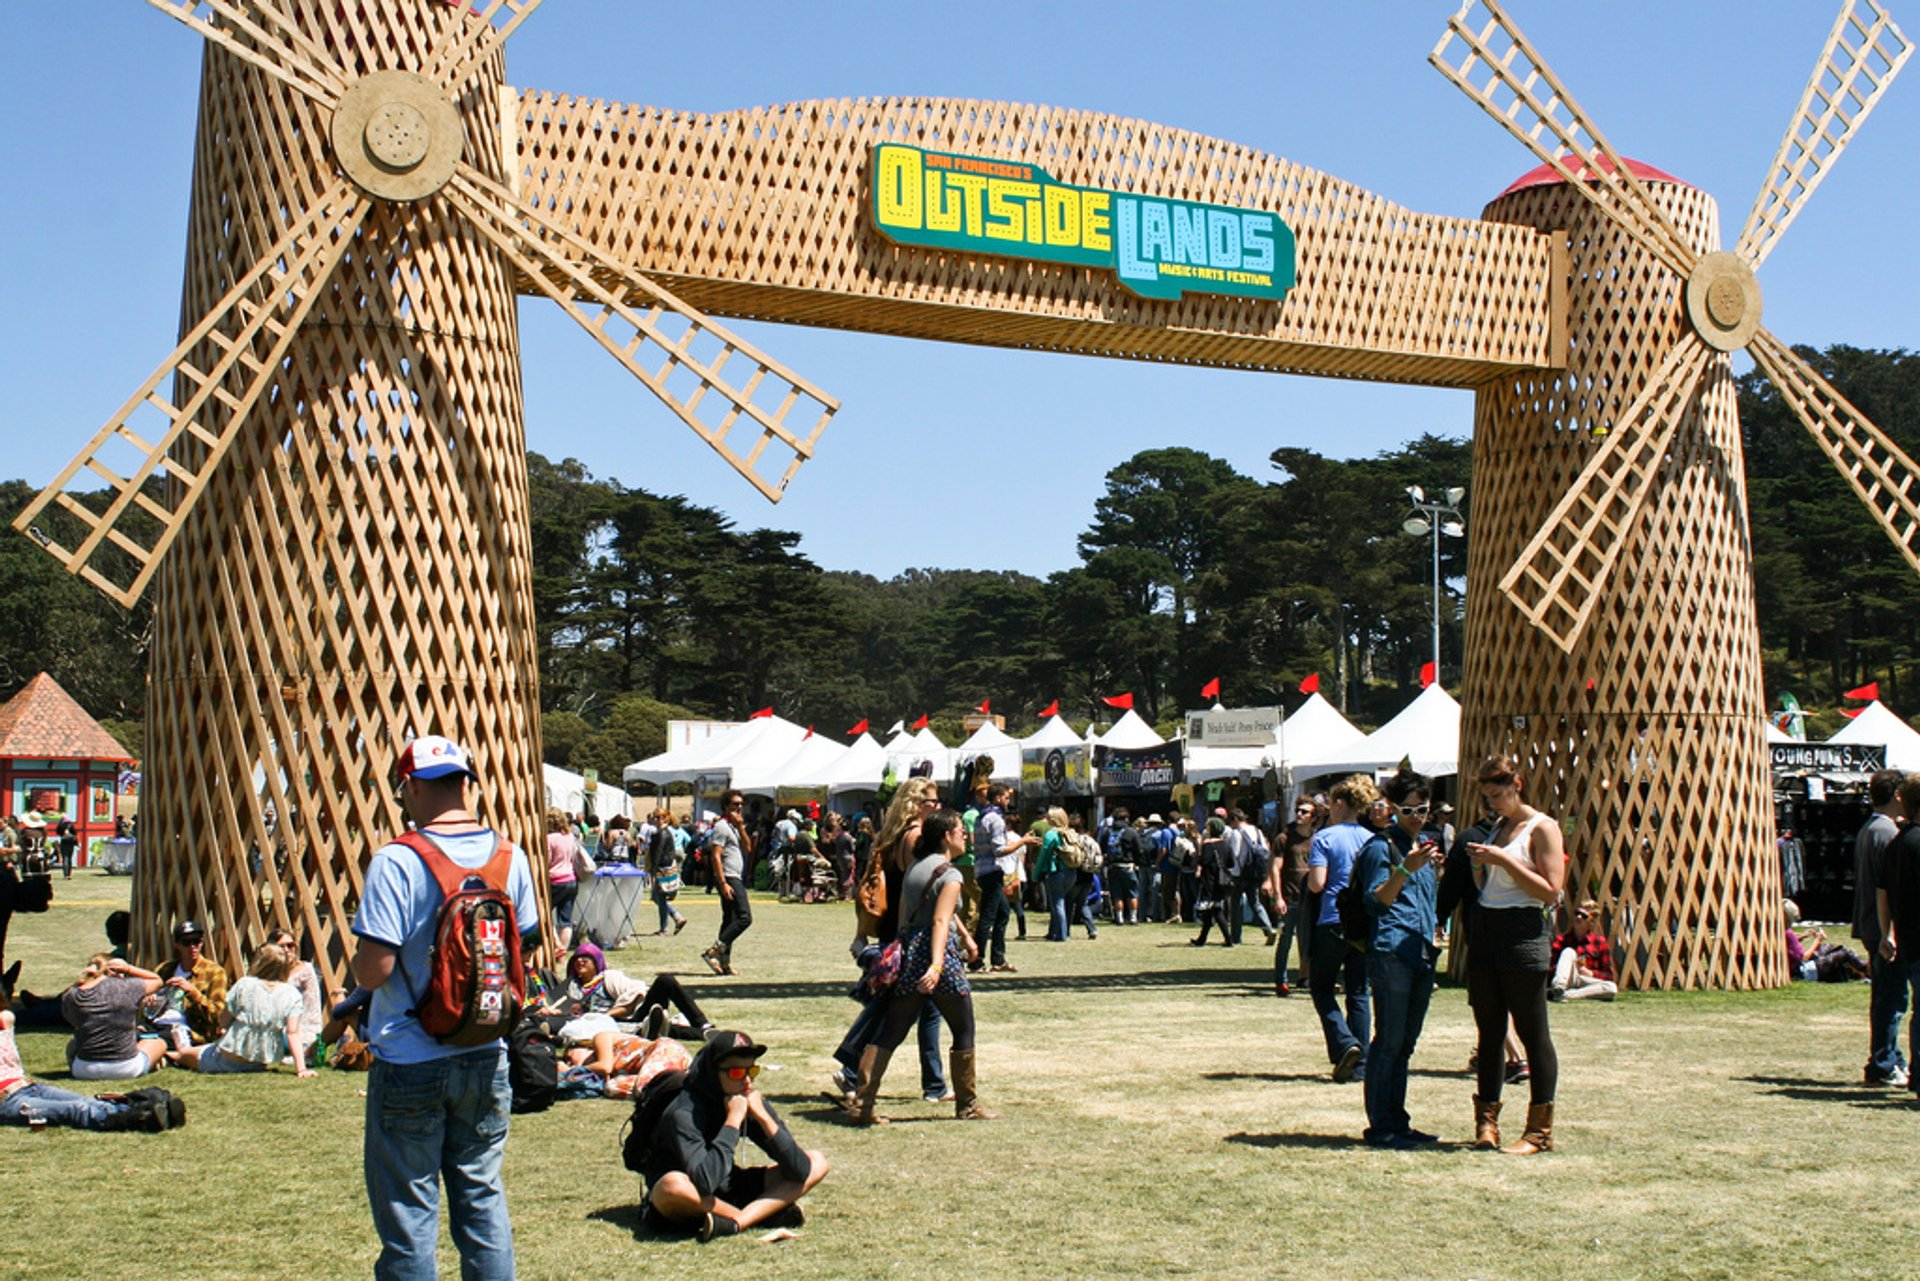 Outside Lands Music and Art Festival in San Francisco 2019 - Best Time